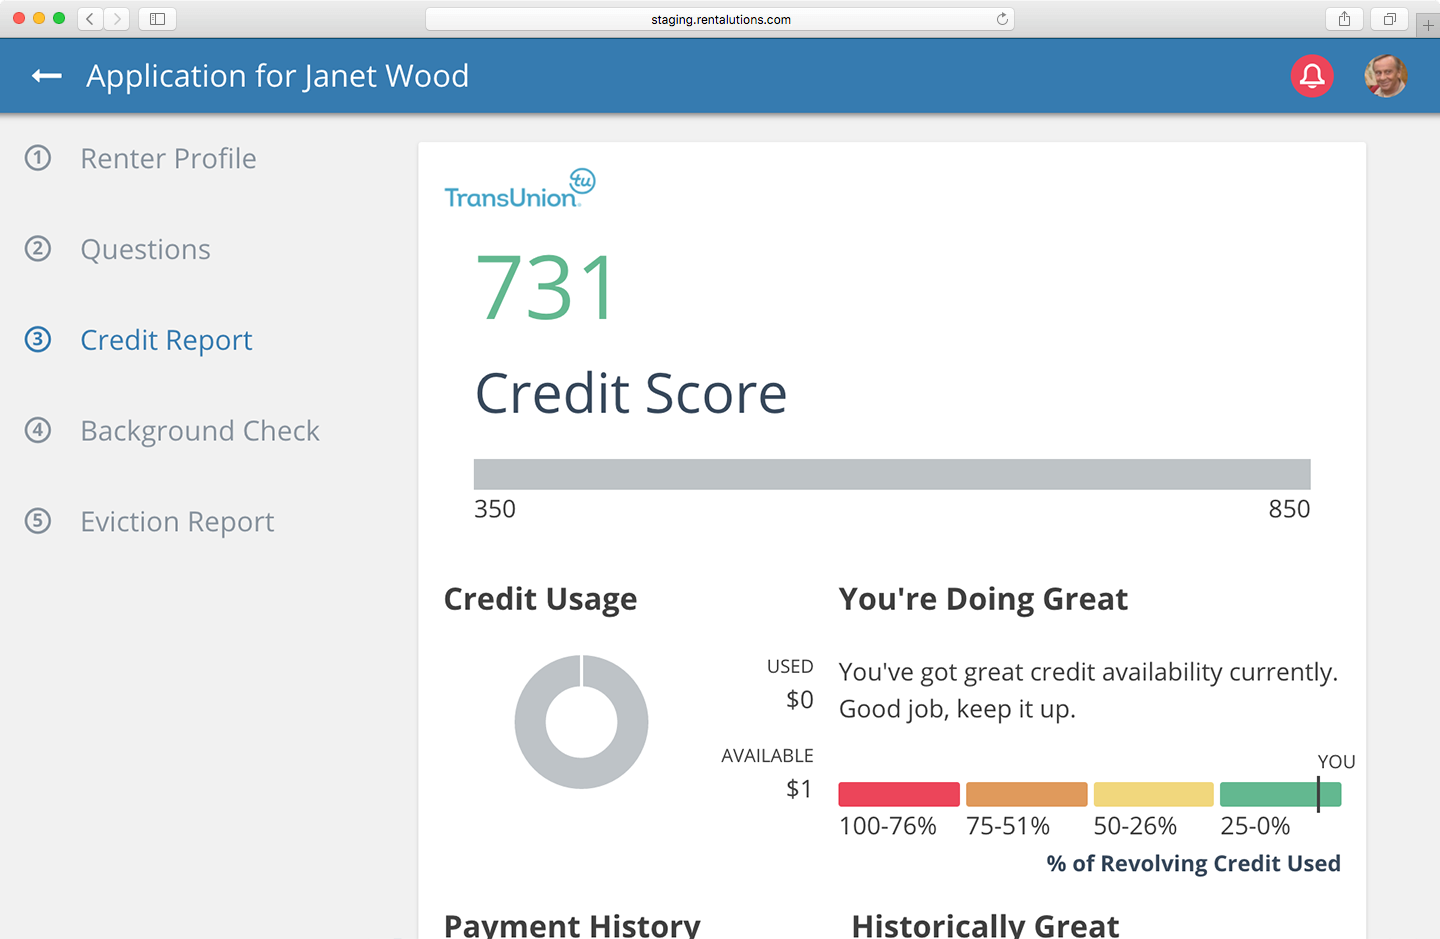 All online credit reports come from TransUnion screenshot